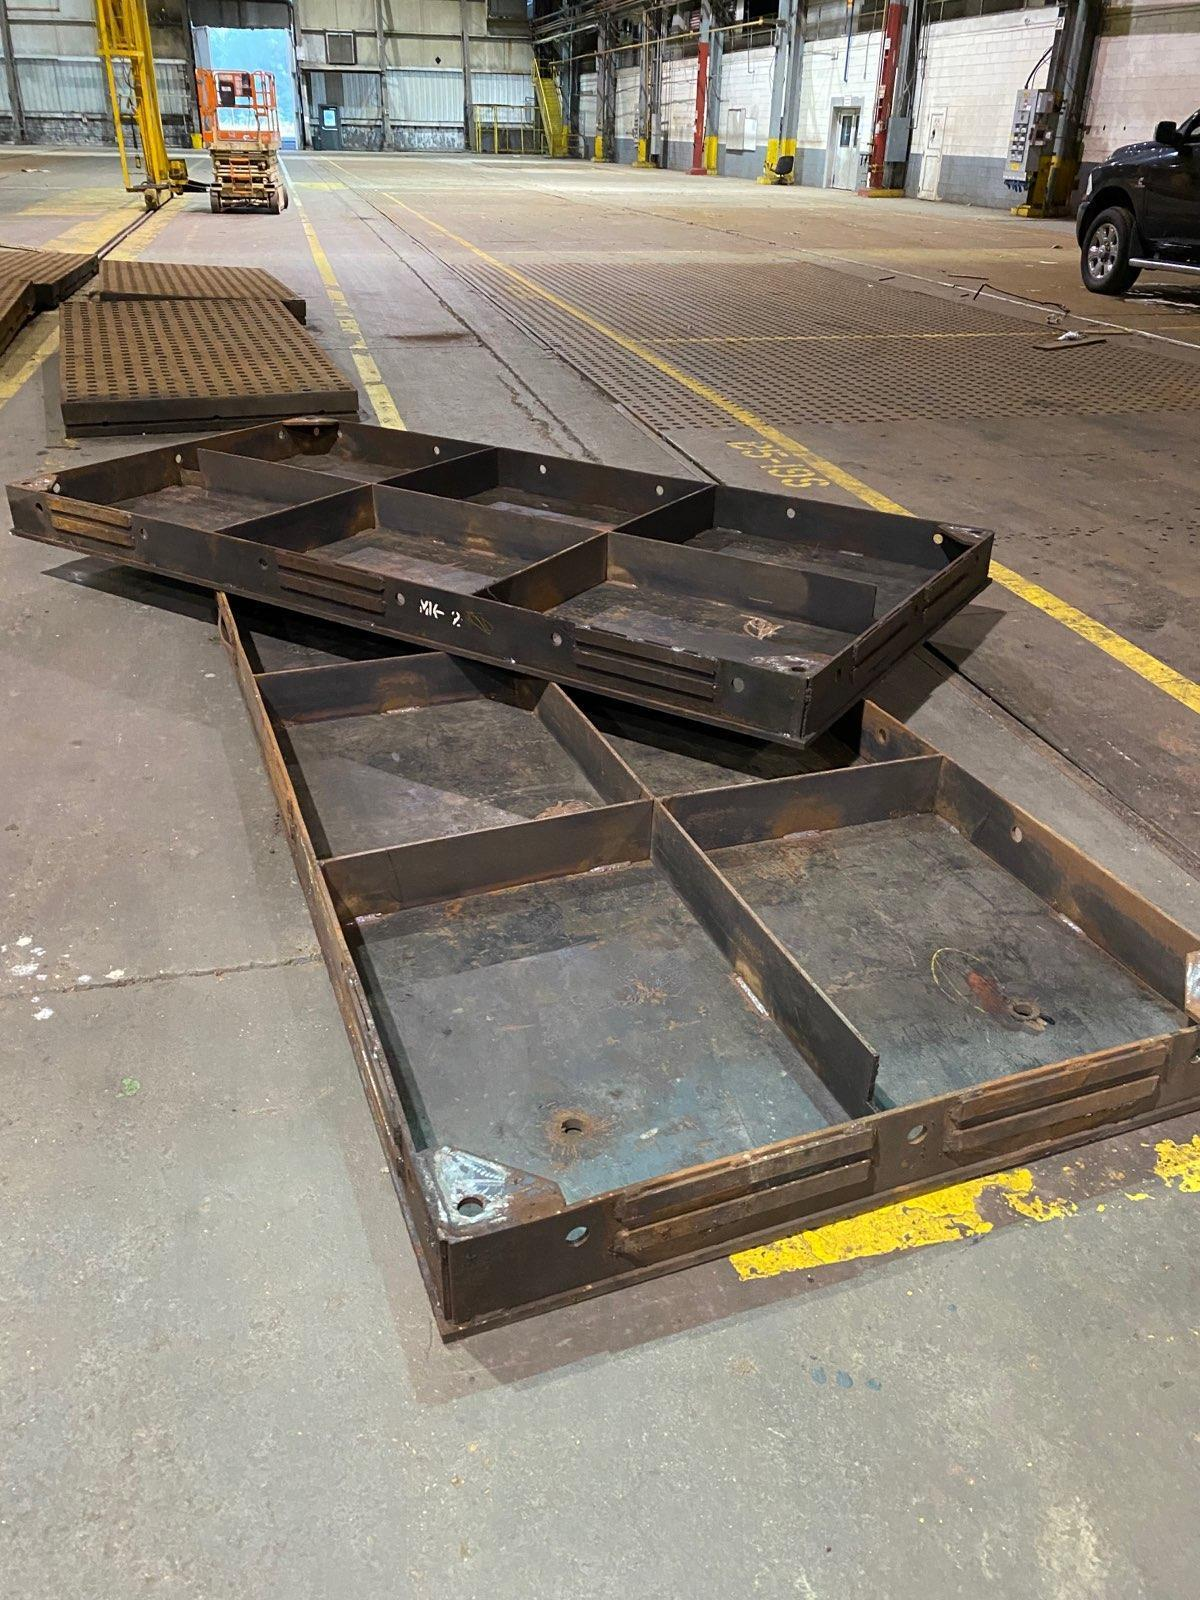 5' X 10' STEEL WELDING TABLES. STOCK # 0953320